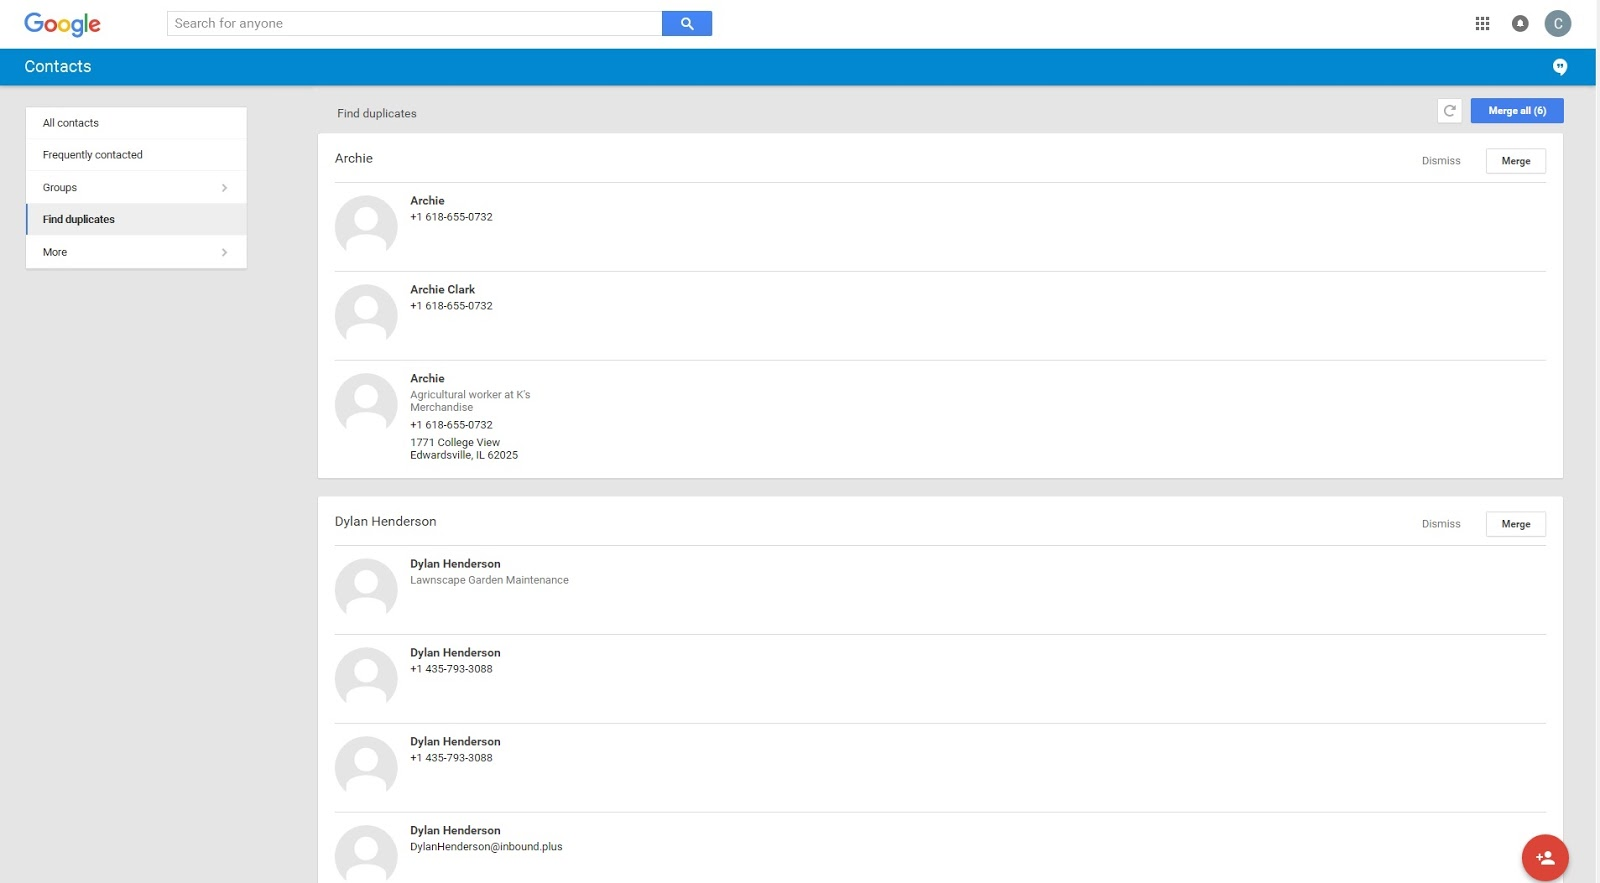 how to remove duplicate contacts from gmail